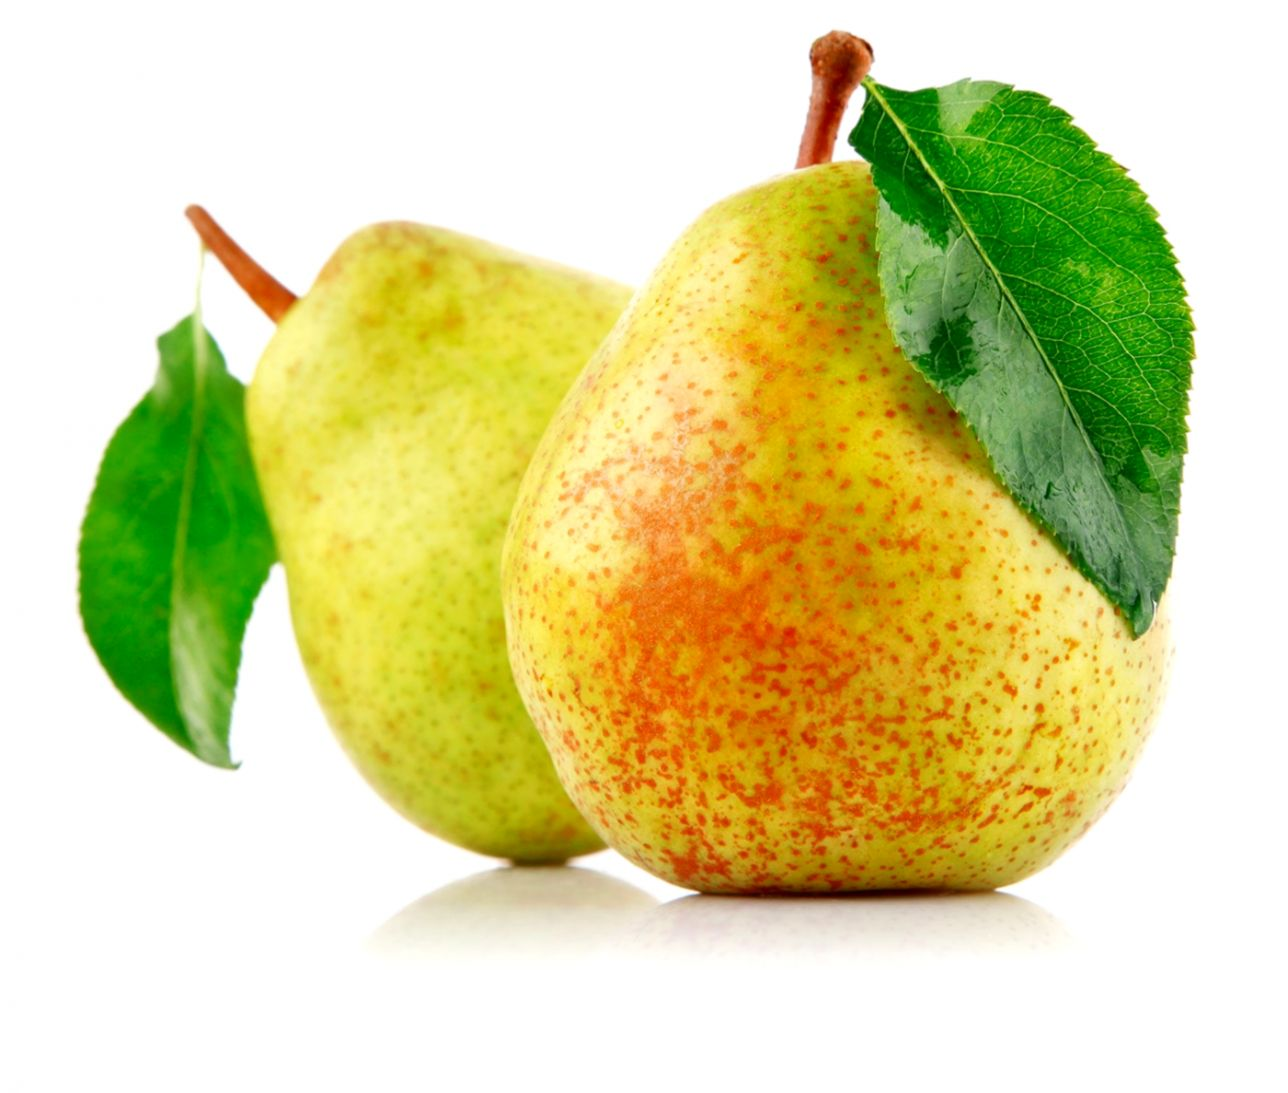 Pears Hd Pictures